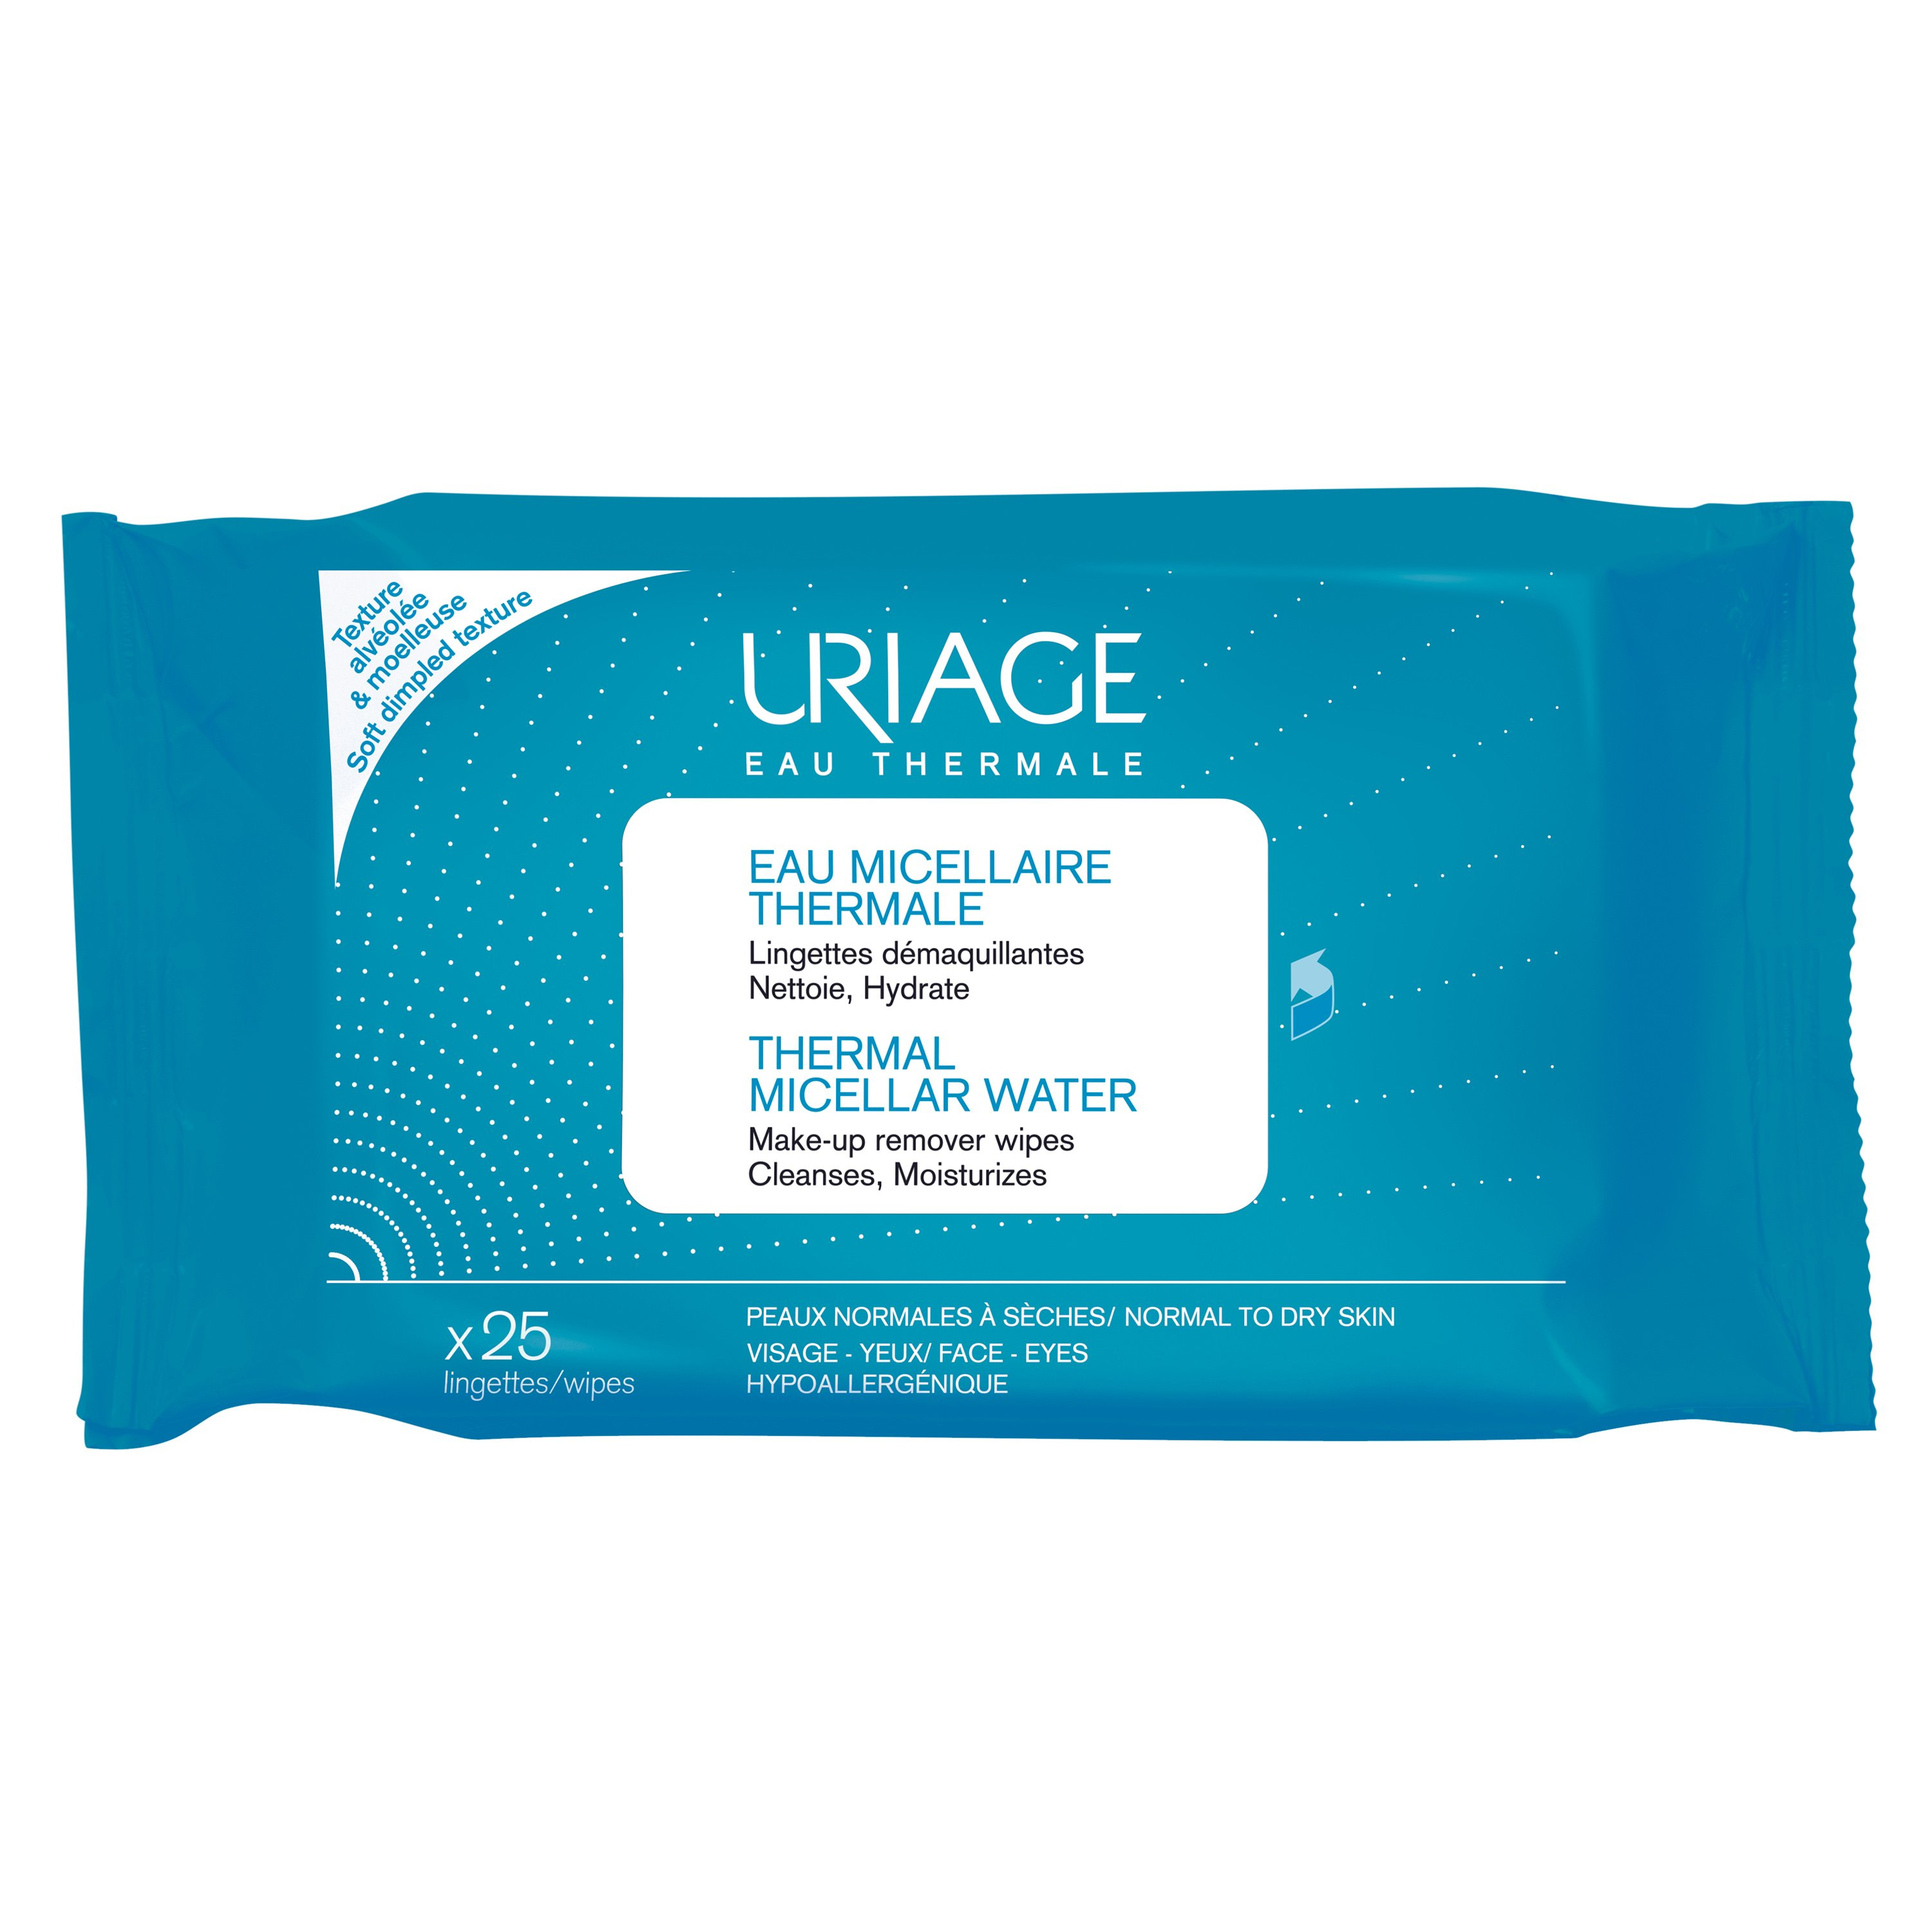 Uriage Eau Thermal Micellar Water Make-up Remover Wipes Μαντηλάκια Καθαρισμού & Ντεμακιγιάζ Προσώπου Ματιών 25 Wipes